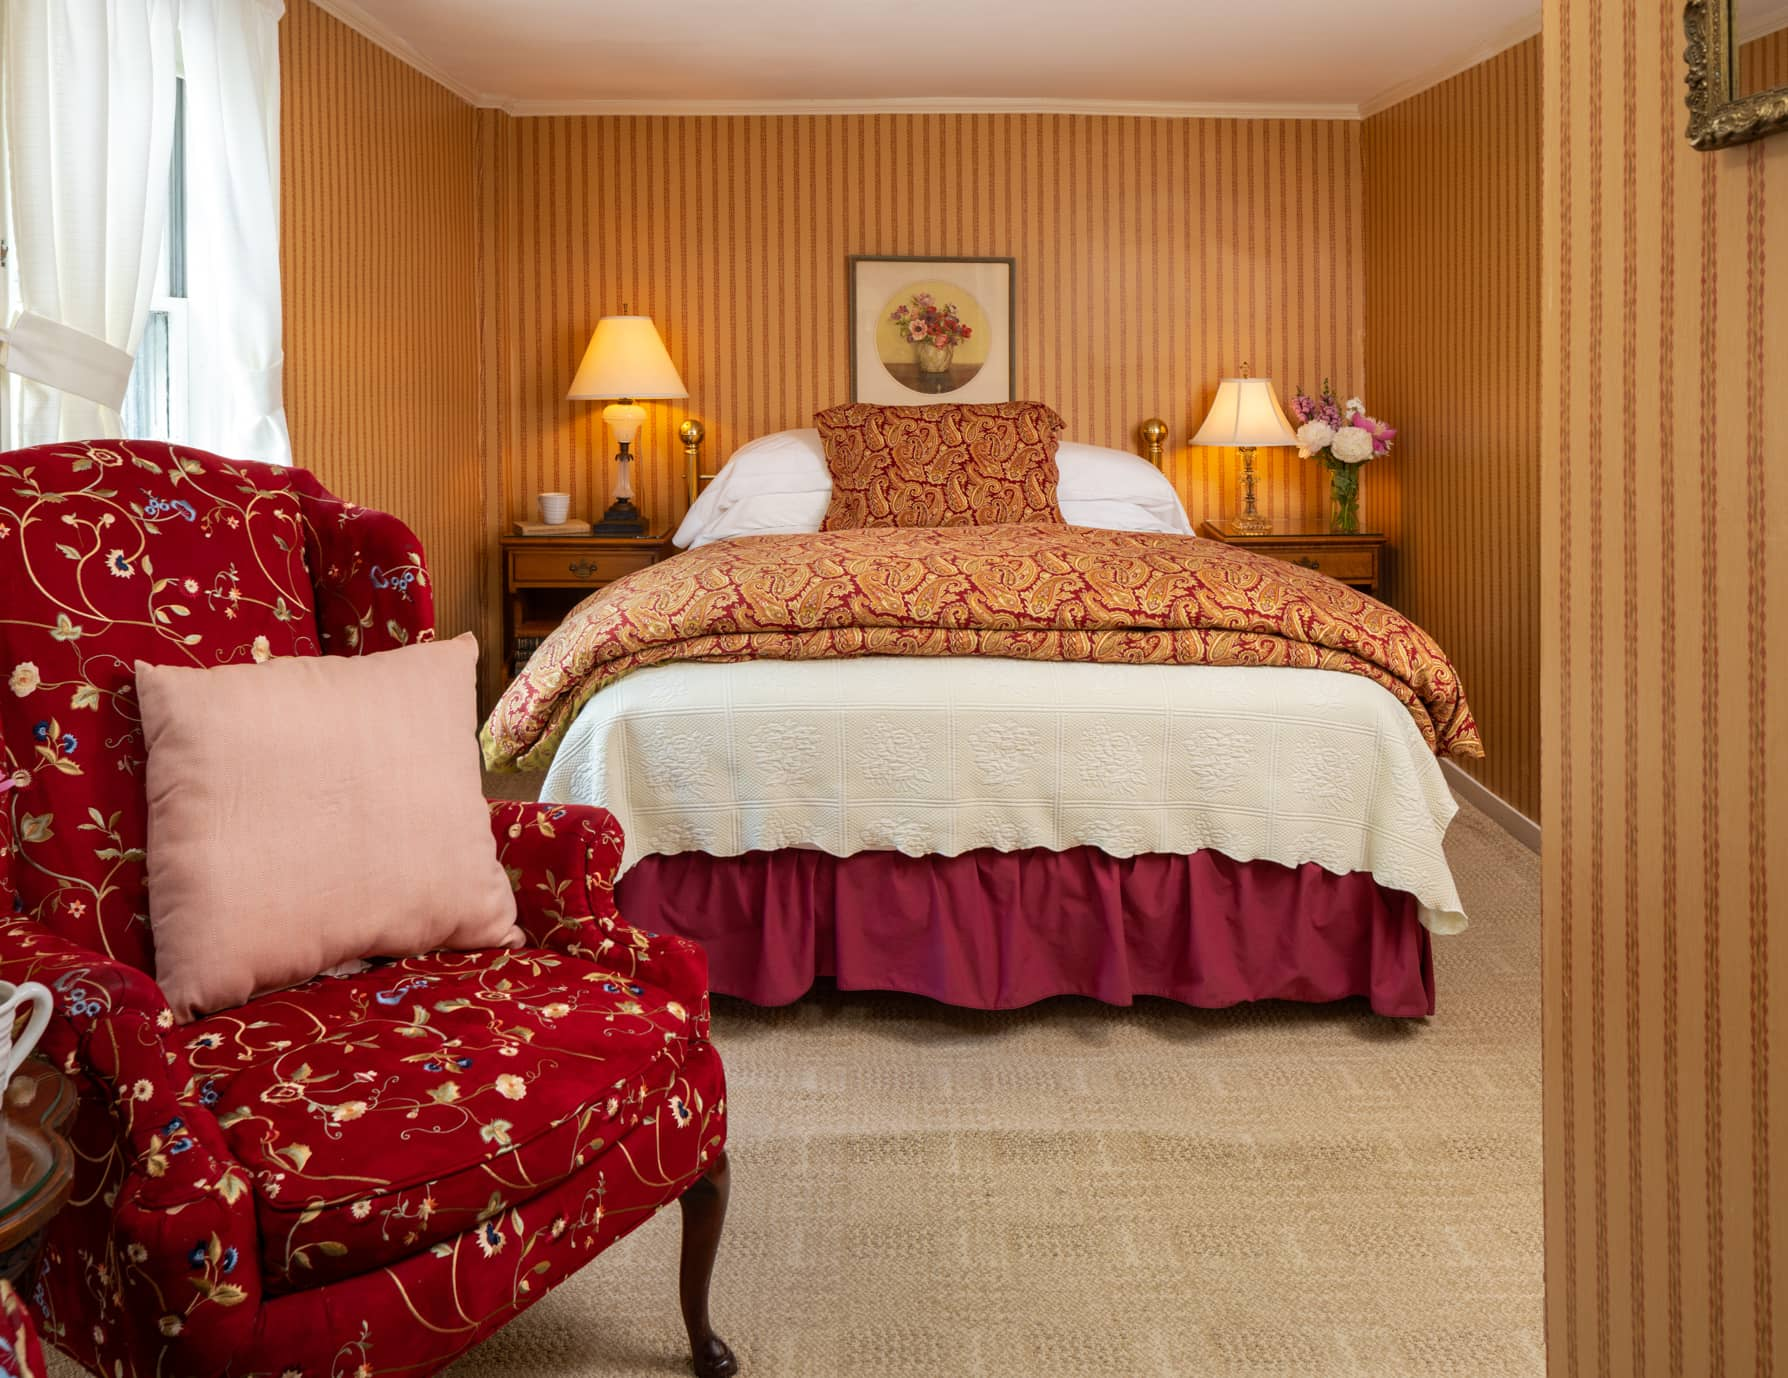 Room 7 with a queen bed carpet flooring and a red chair